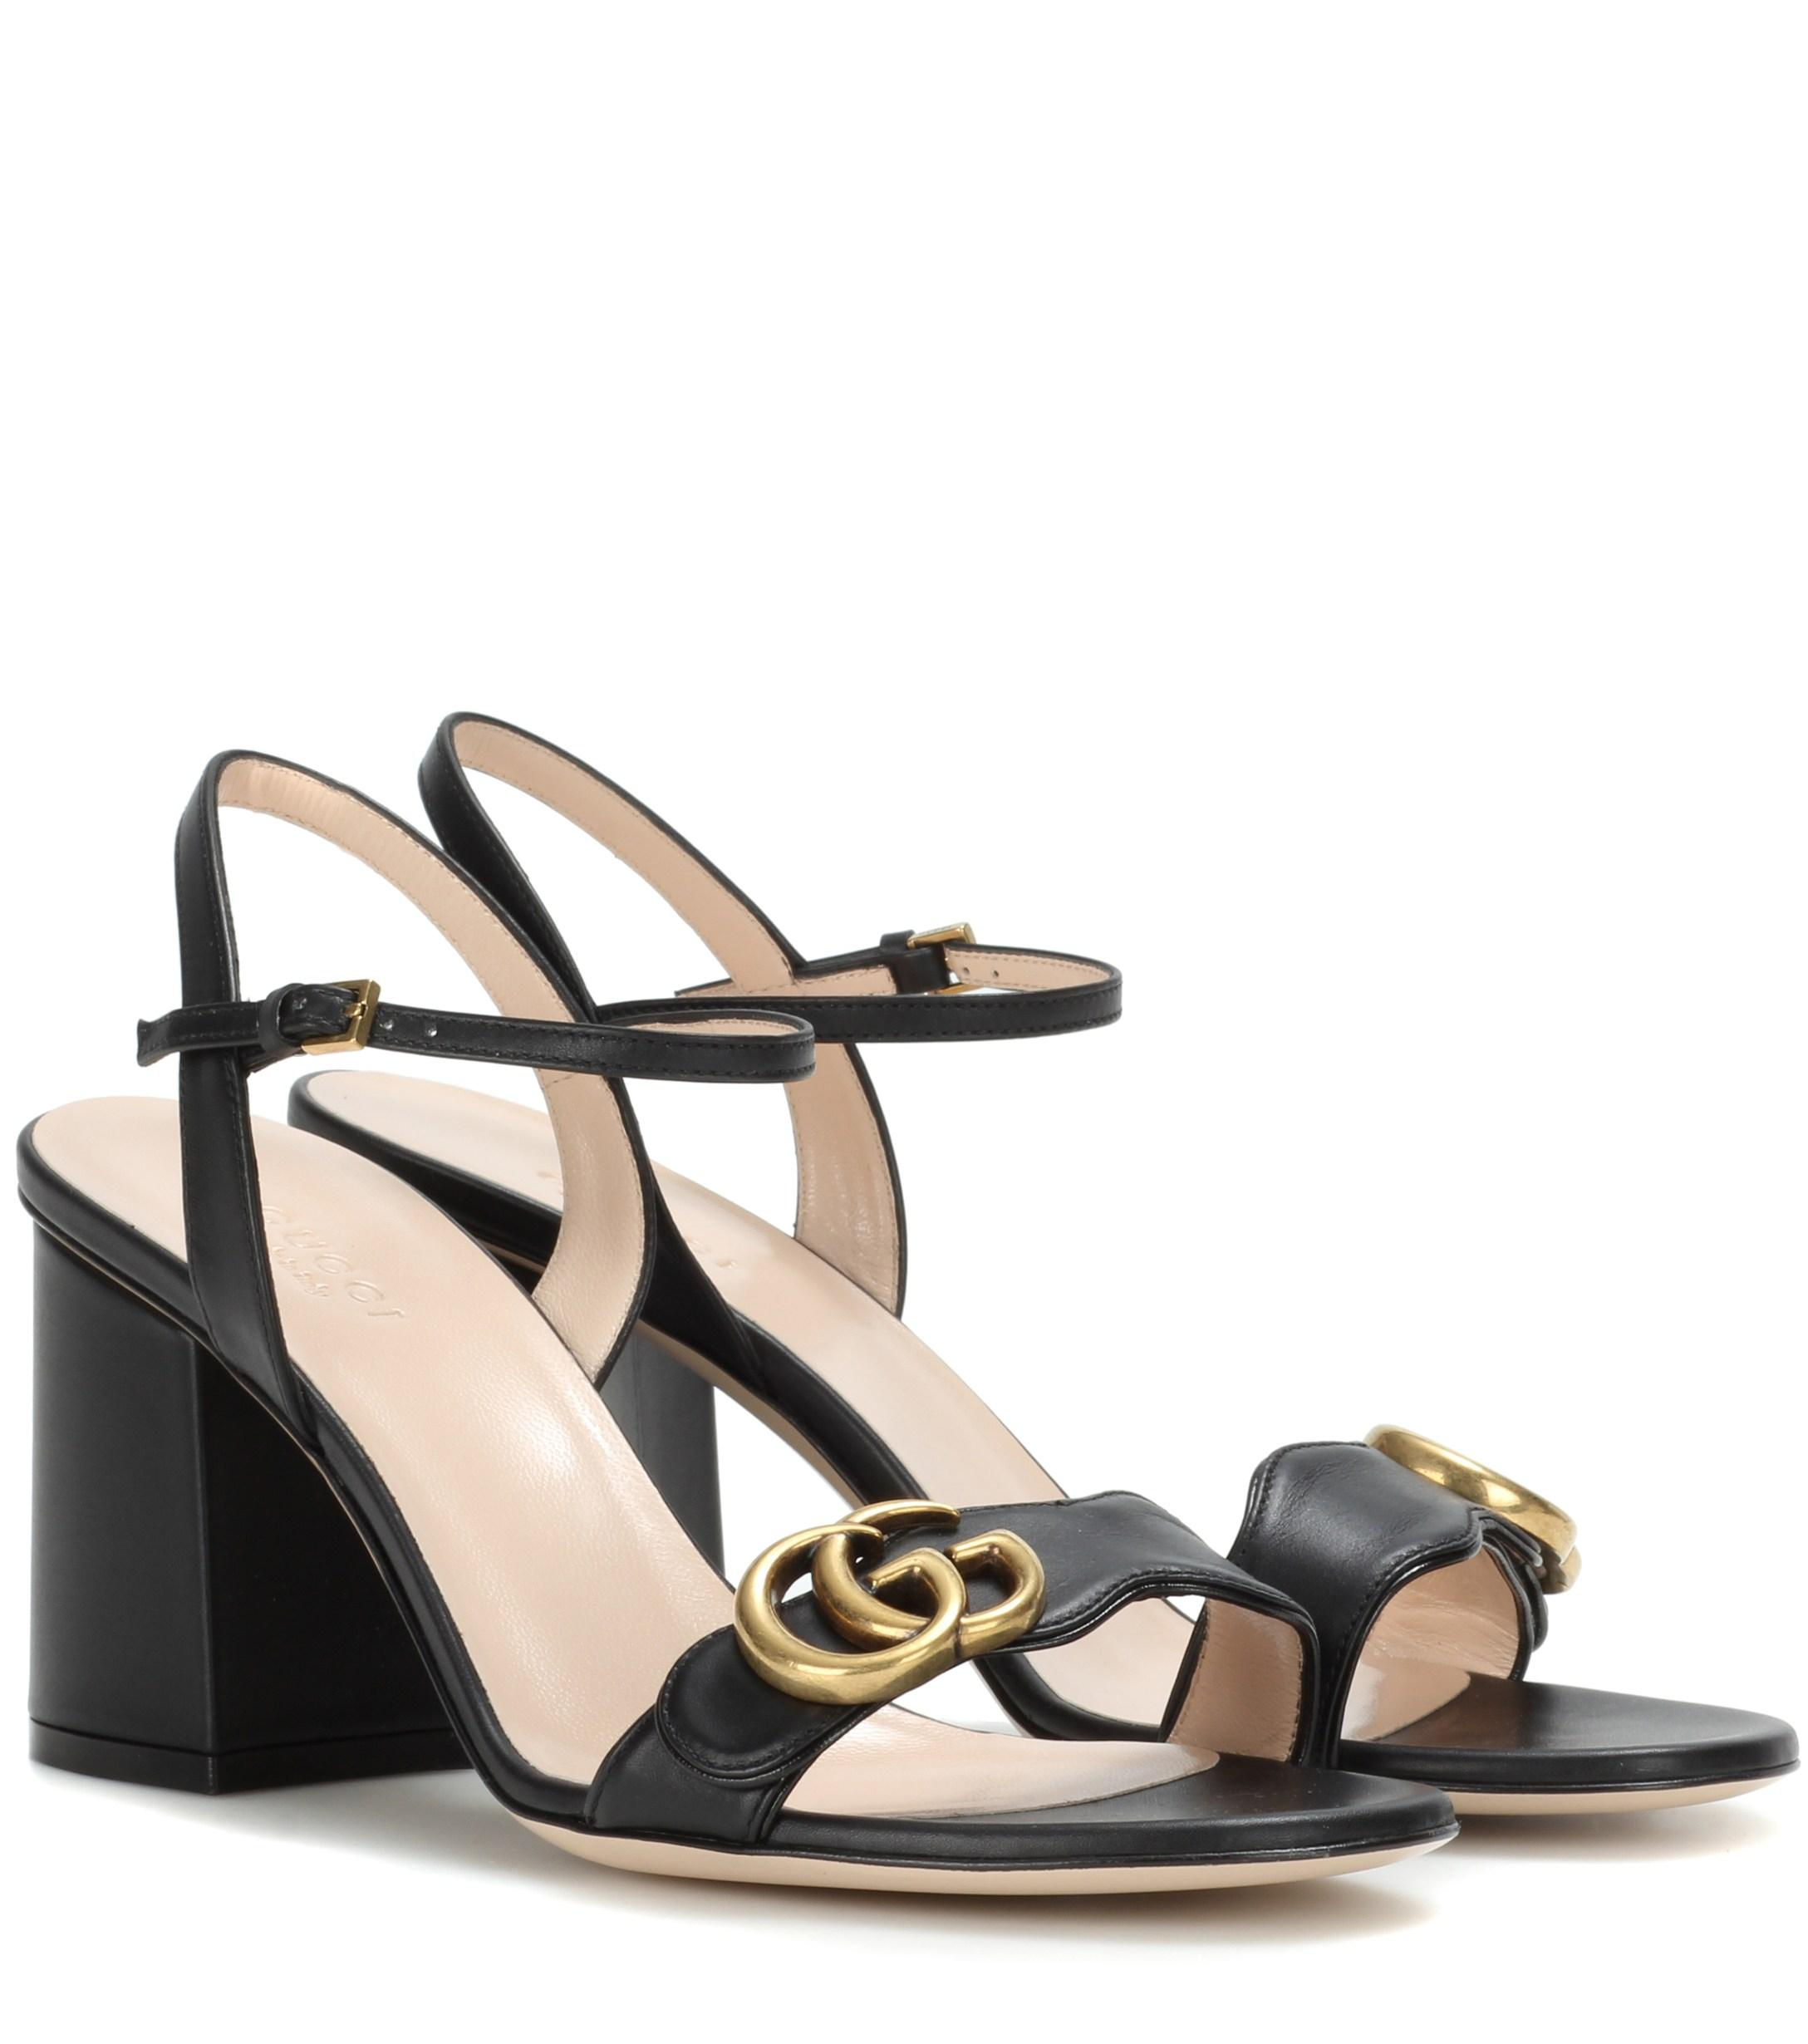 02583b46ce Gucci Leather Sandals in Black - Save 8% - Lyst